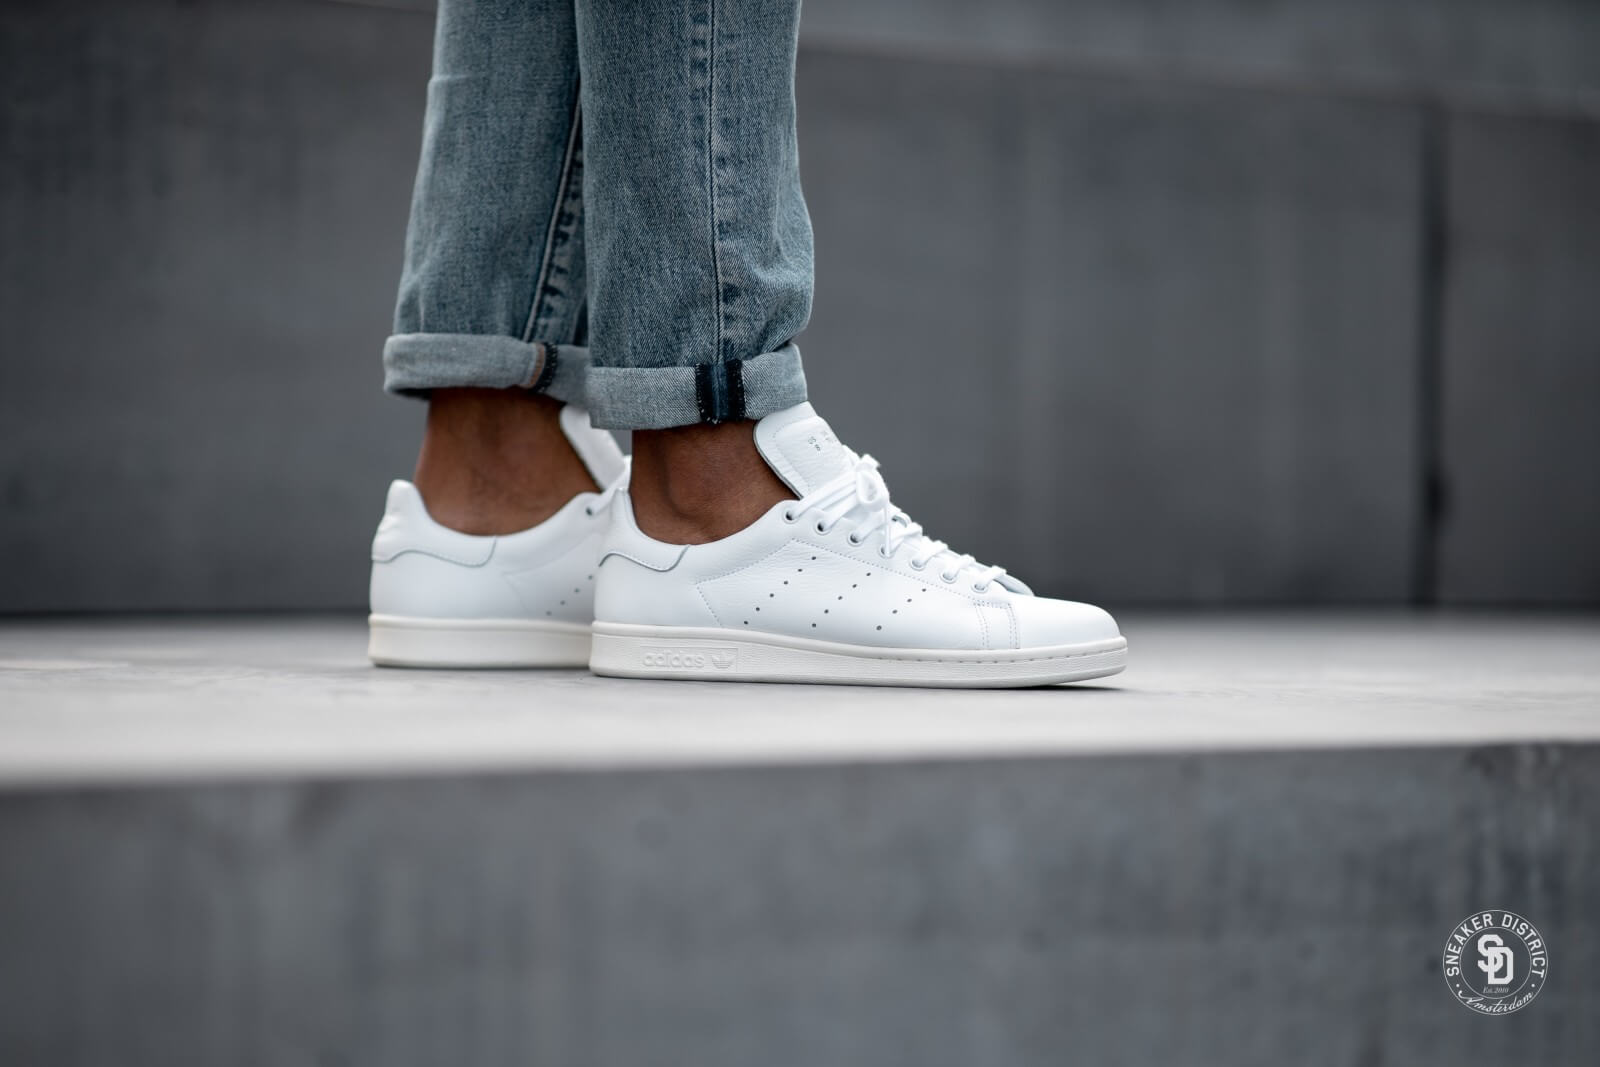 Adidas Home of Classics Stan Smith Recon Footwear White EE5790